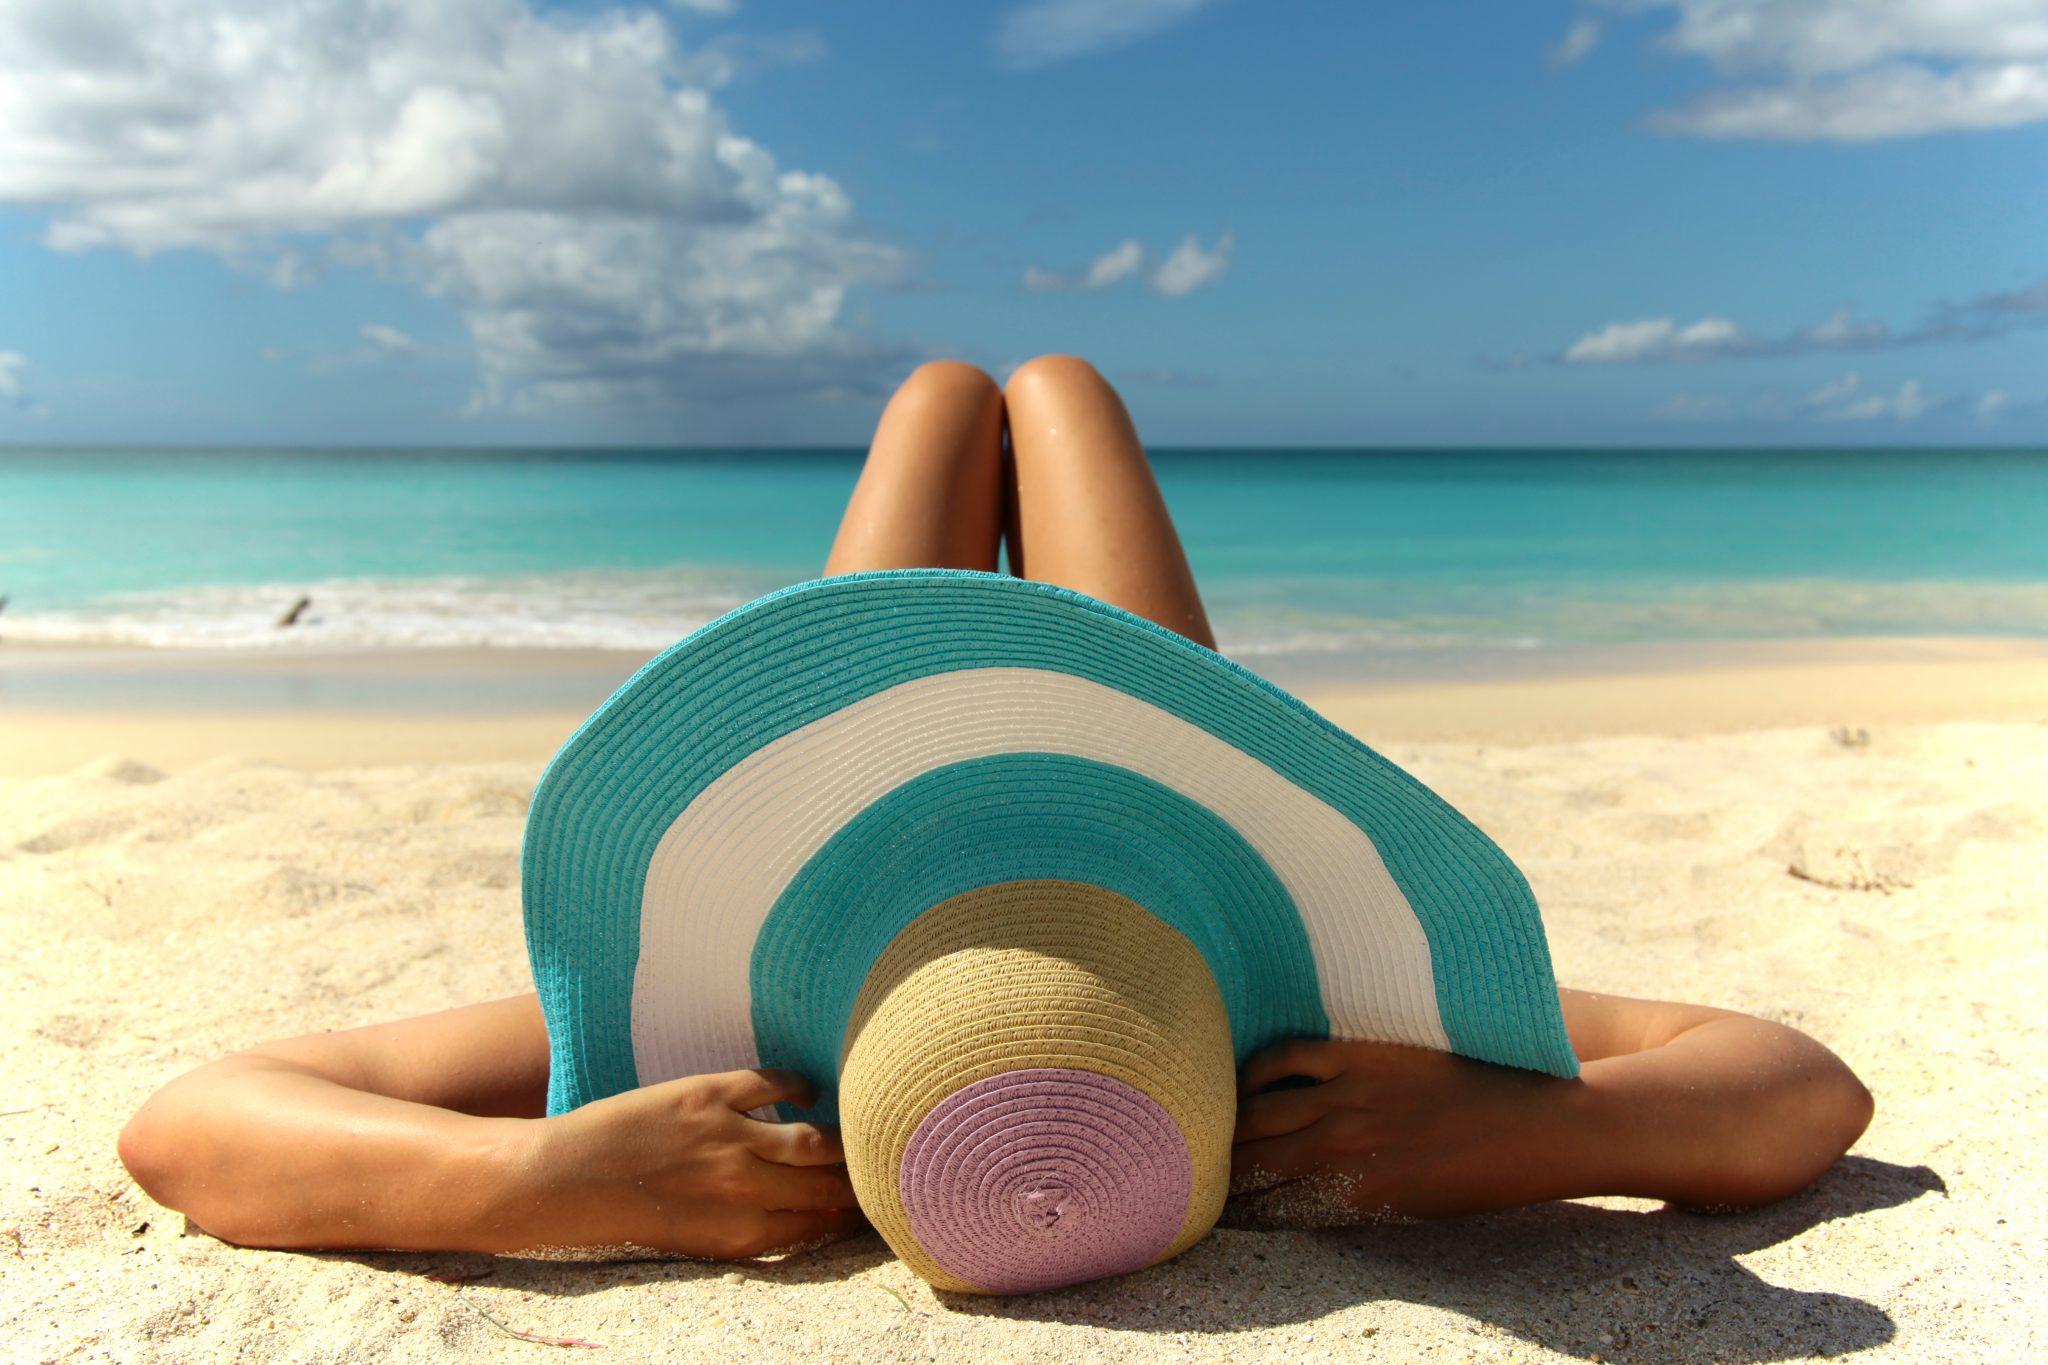 Woman wearing wide-brimmed hat on beach